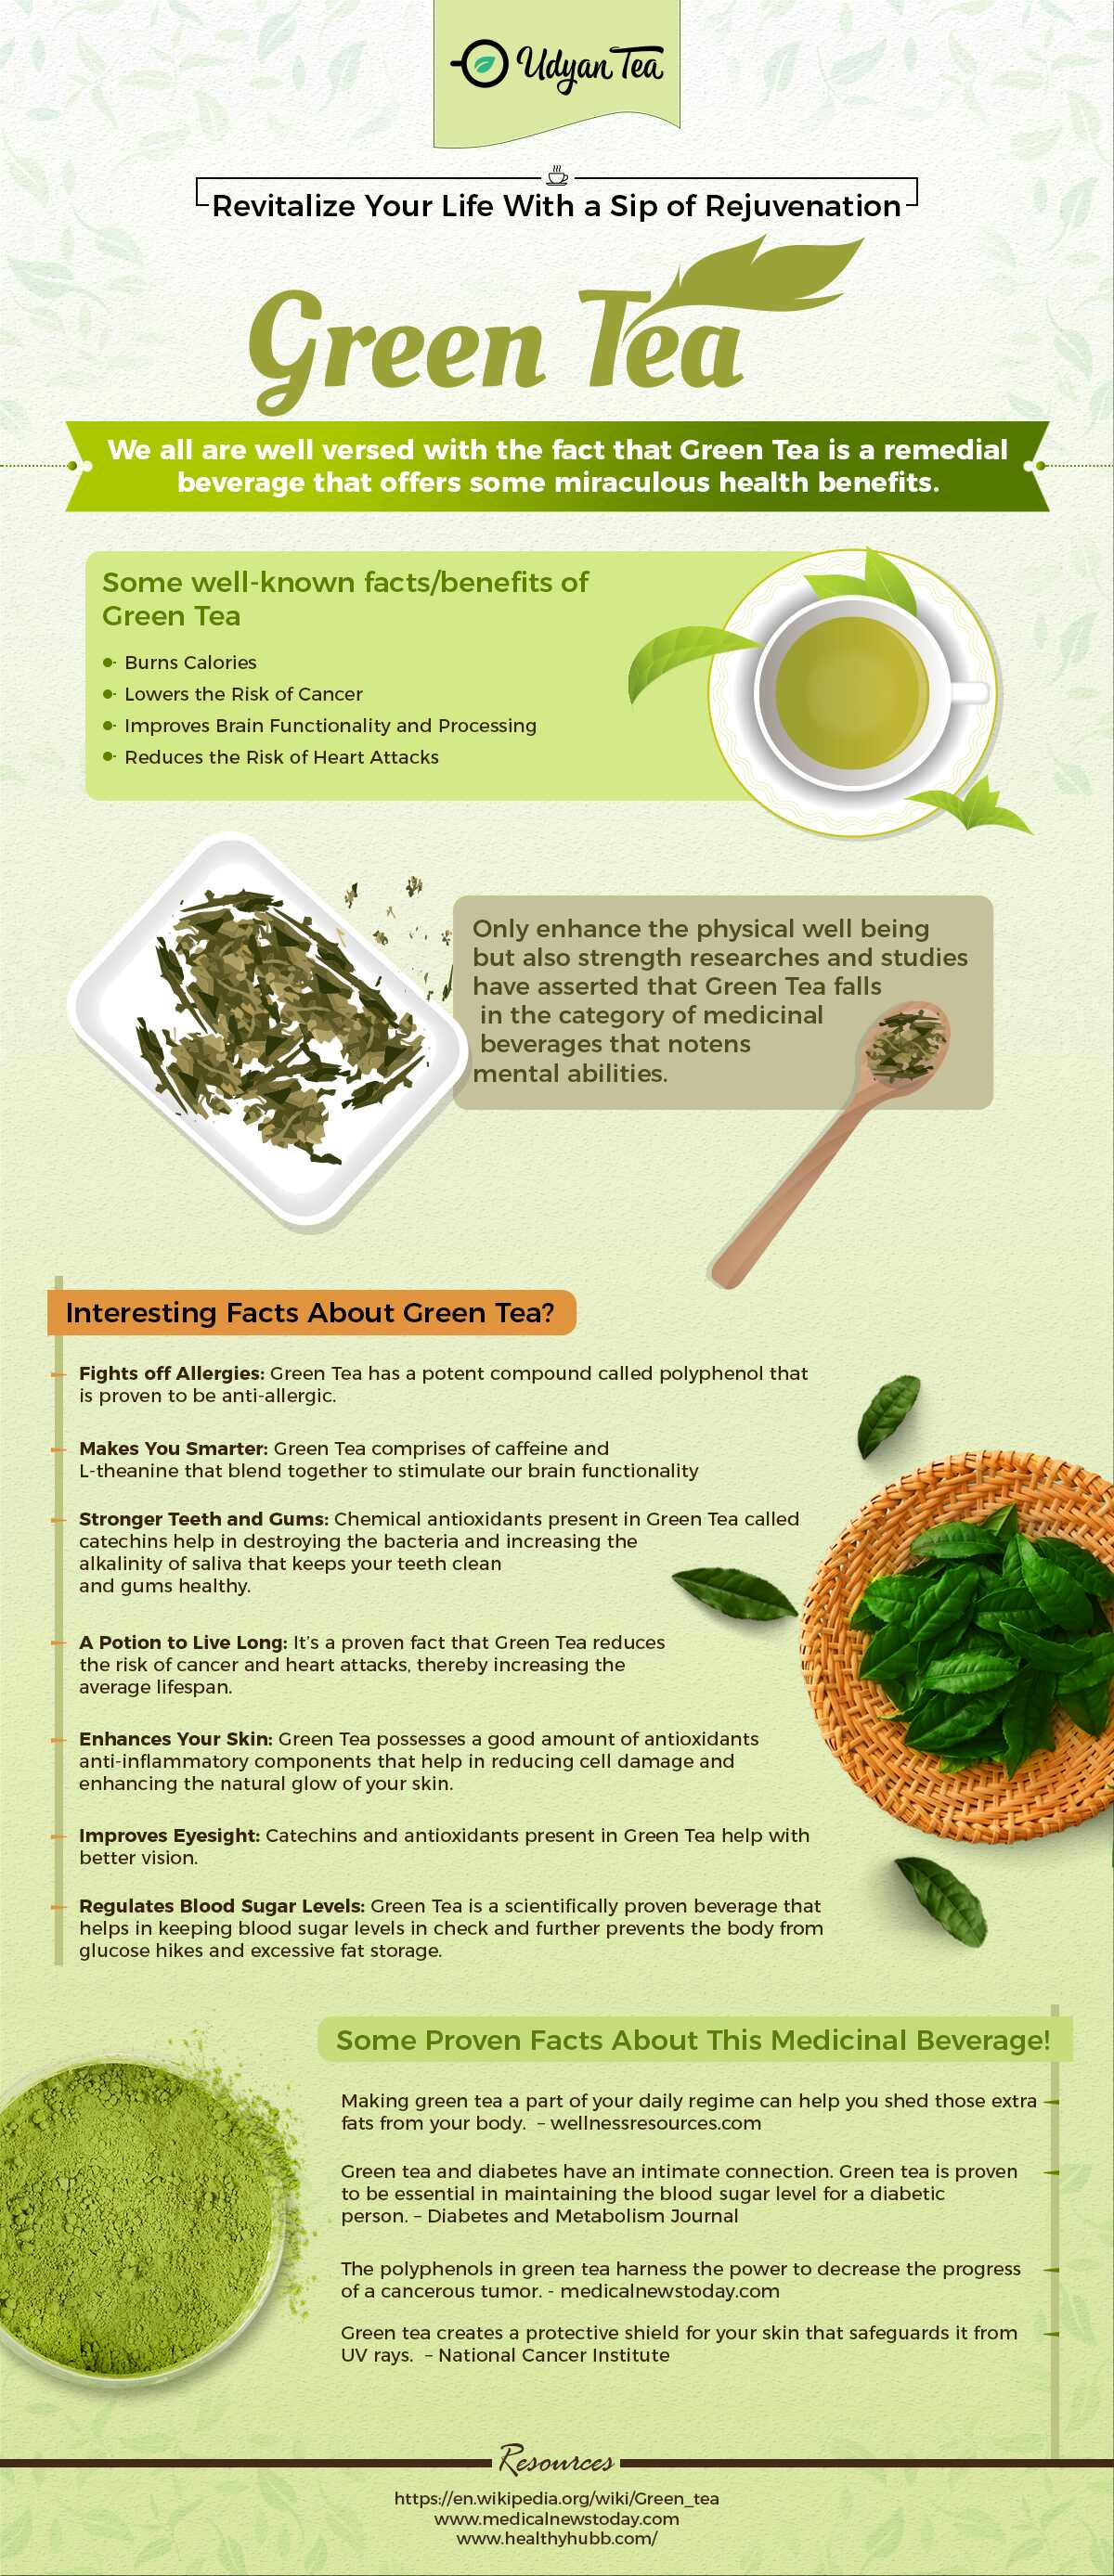 It's All About (The) GREEN TEA